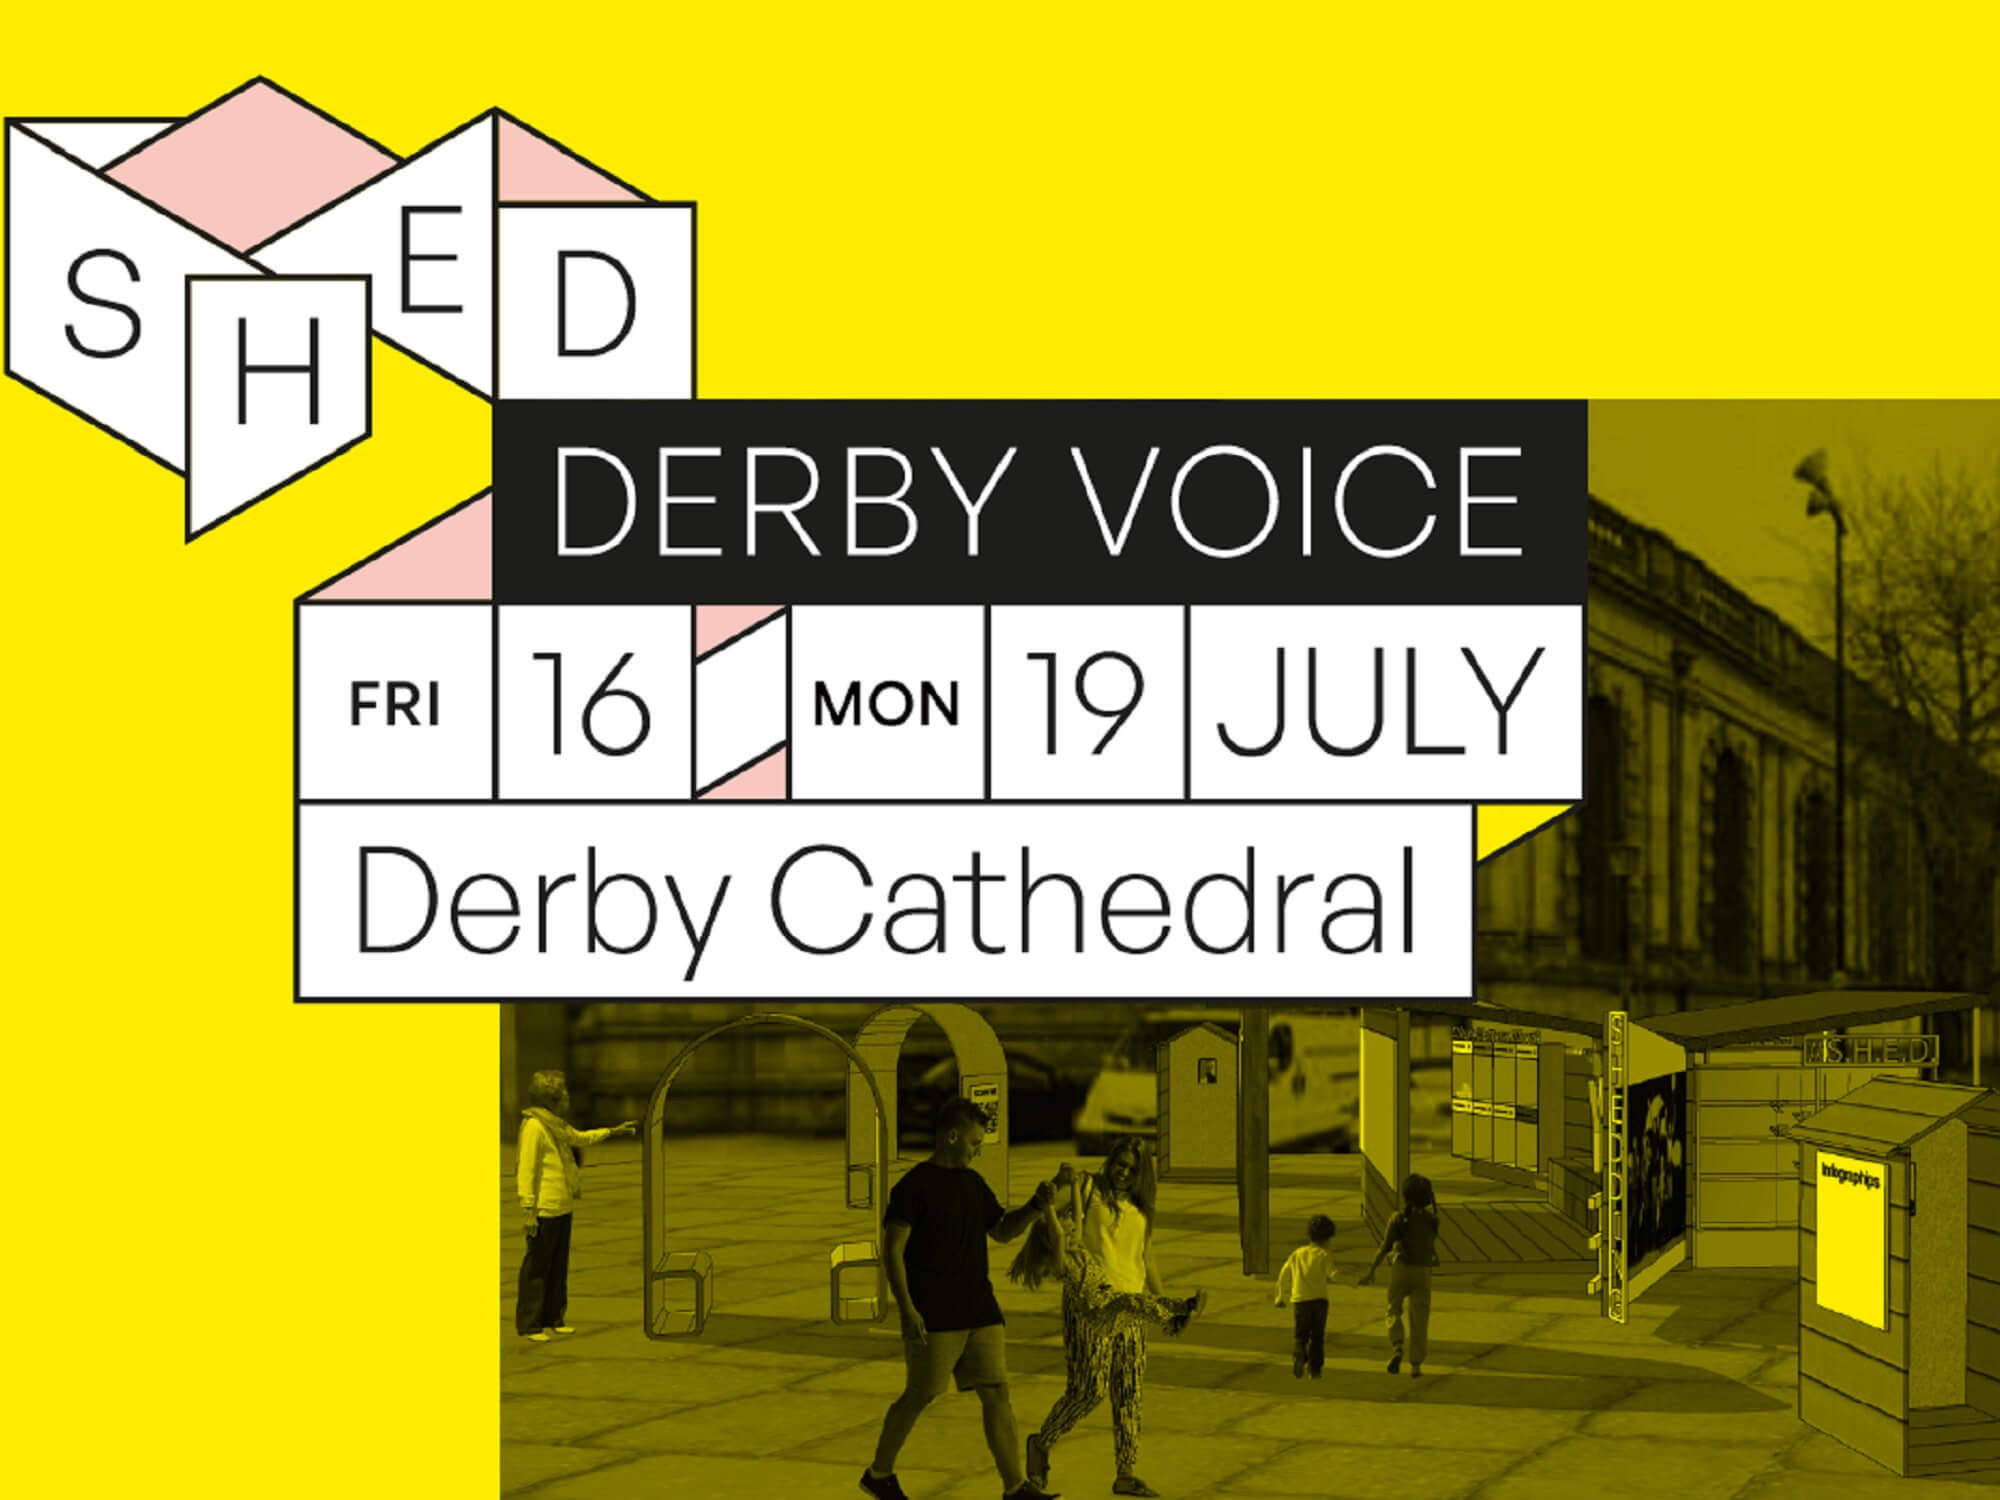 Yellow graphic for SHED Derby Voice event